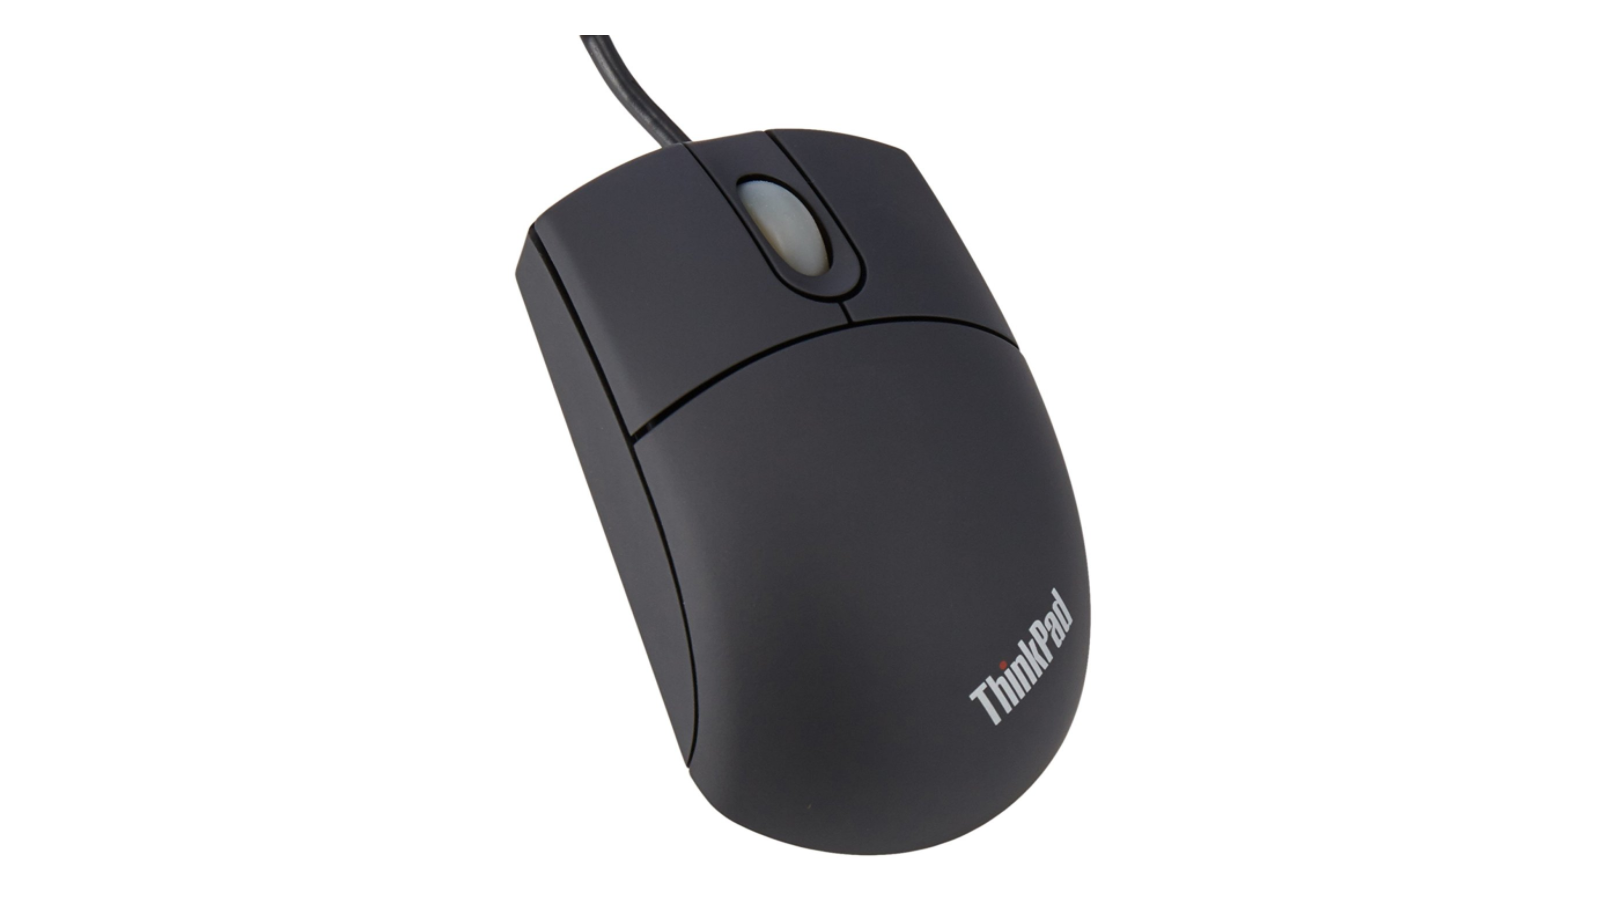 thinkpad travel mouse